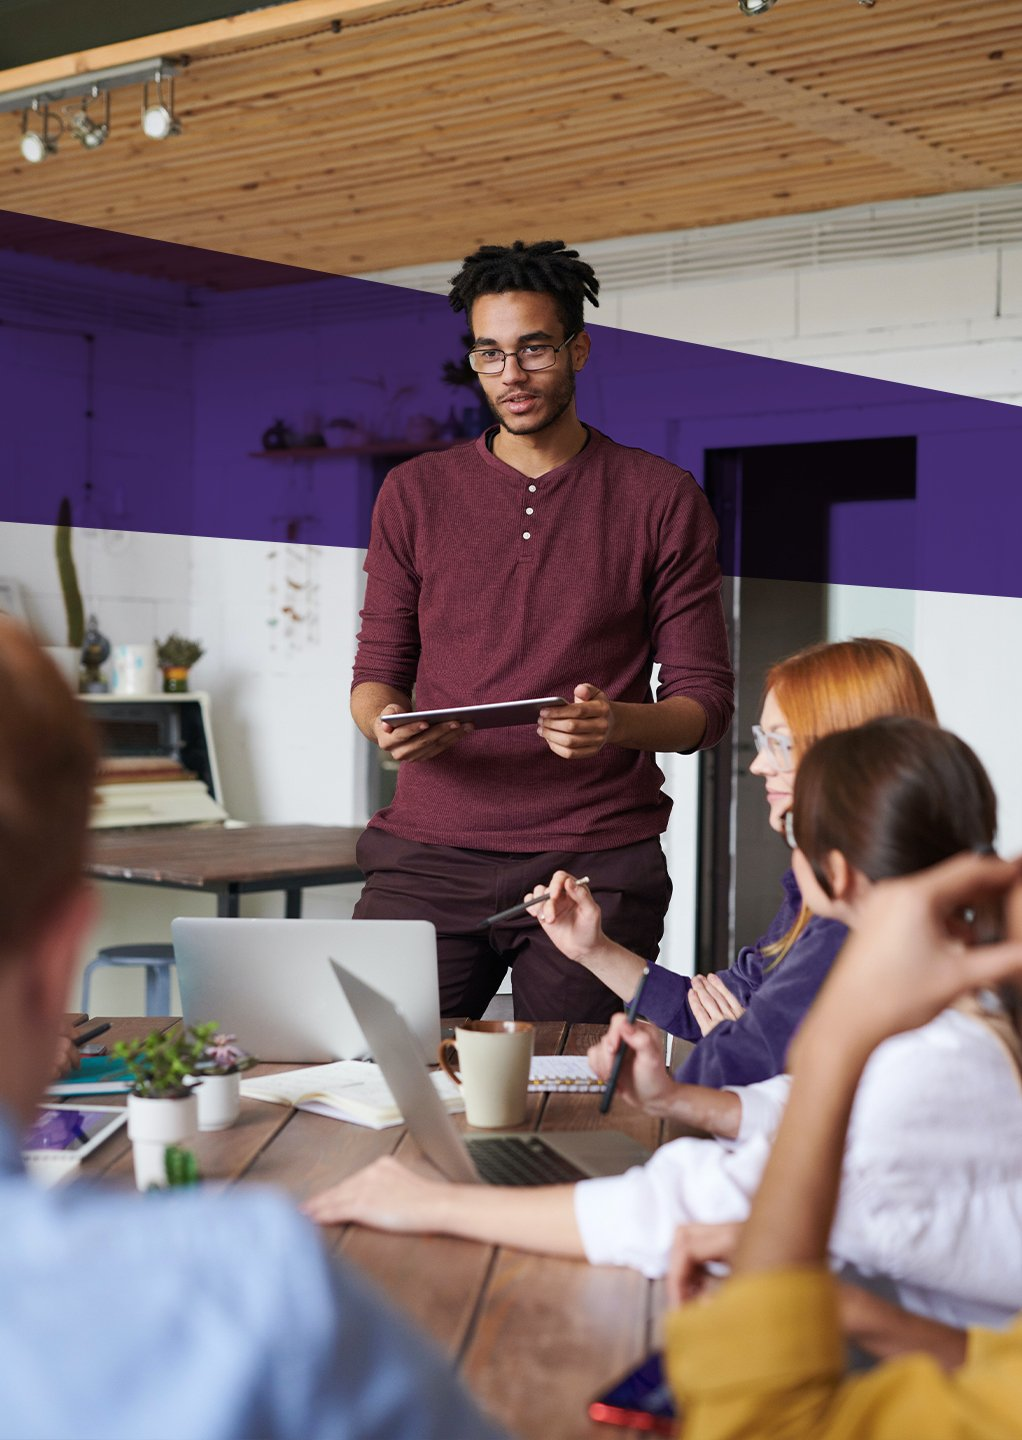 apprenticeship levy, apprenticeship levy explained, empentis, apprenticeships, online apprenticeships, remote learning